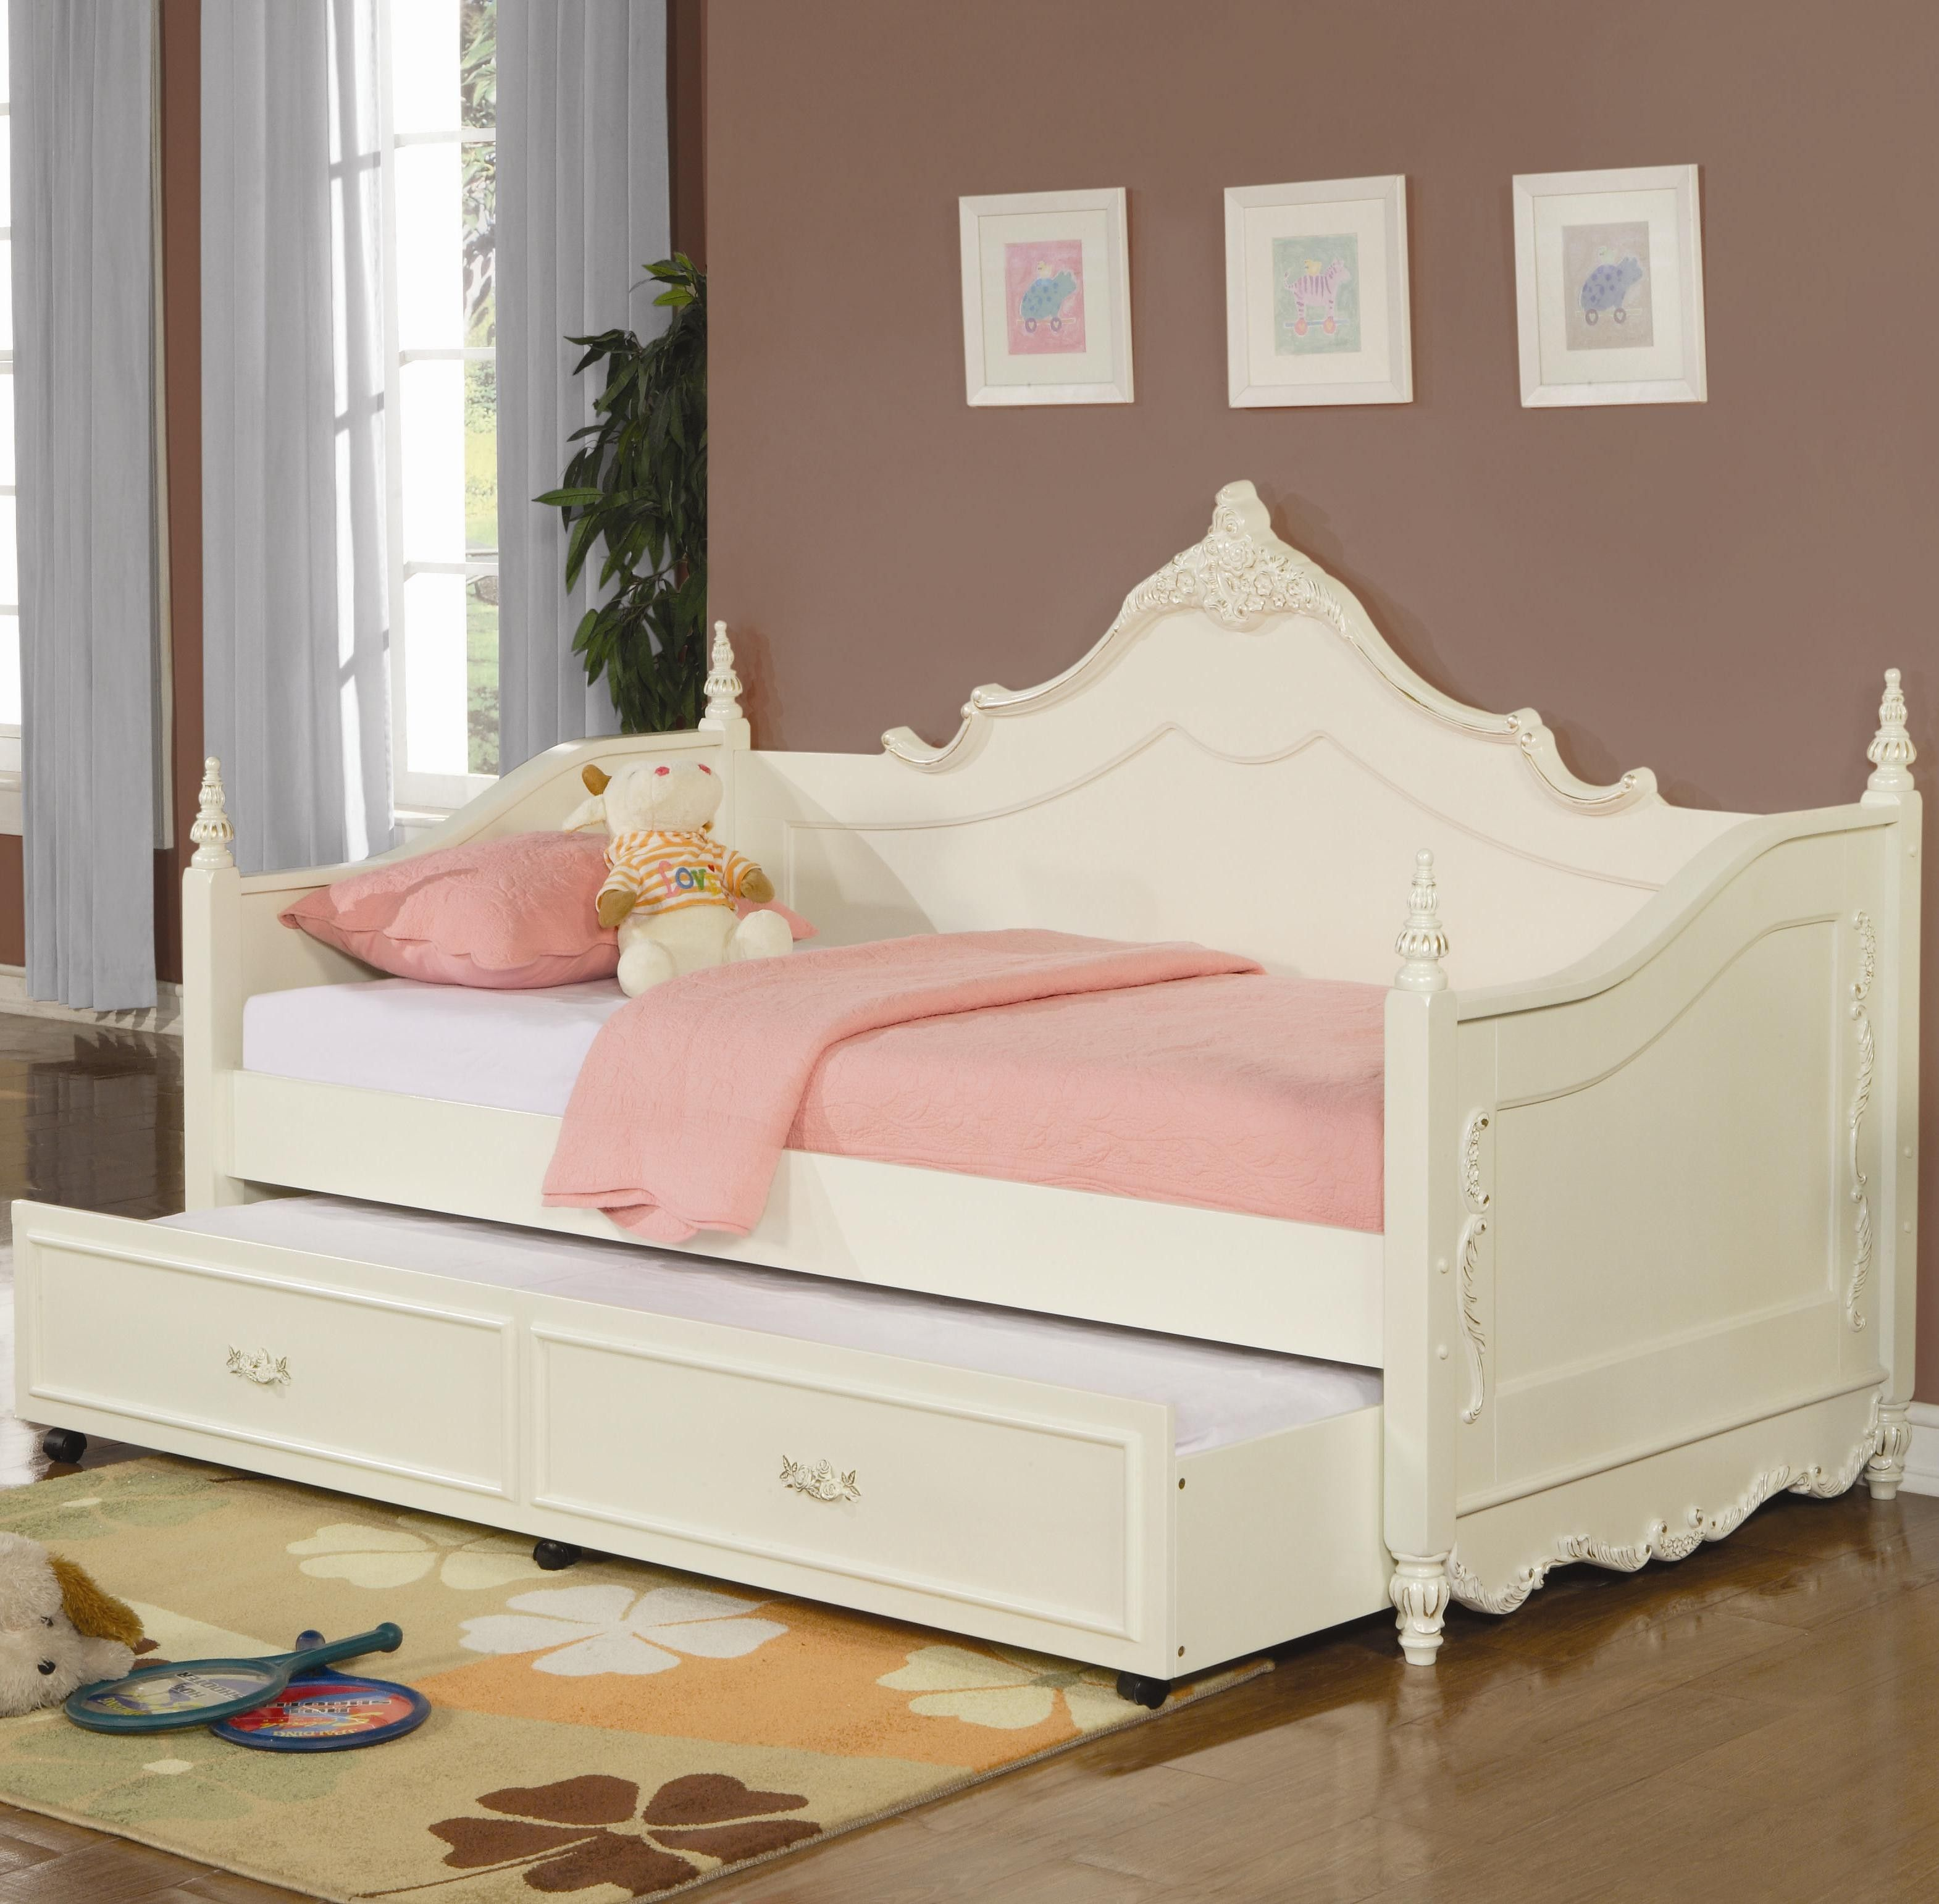 Daybed Trundle Ikea | Ό,τι θέλω να αγοράσω | Pinterest | Para niños